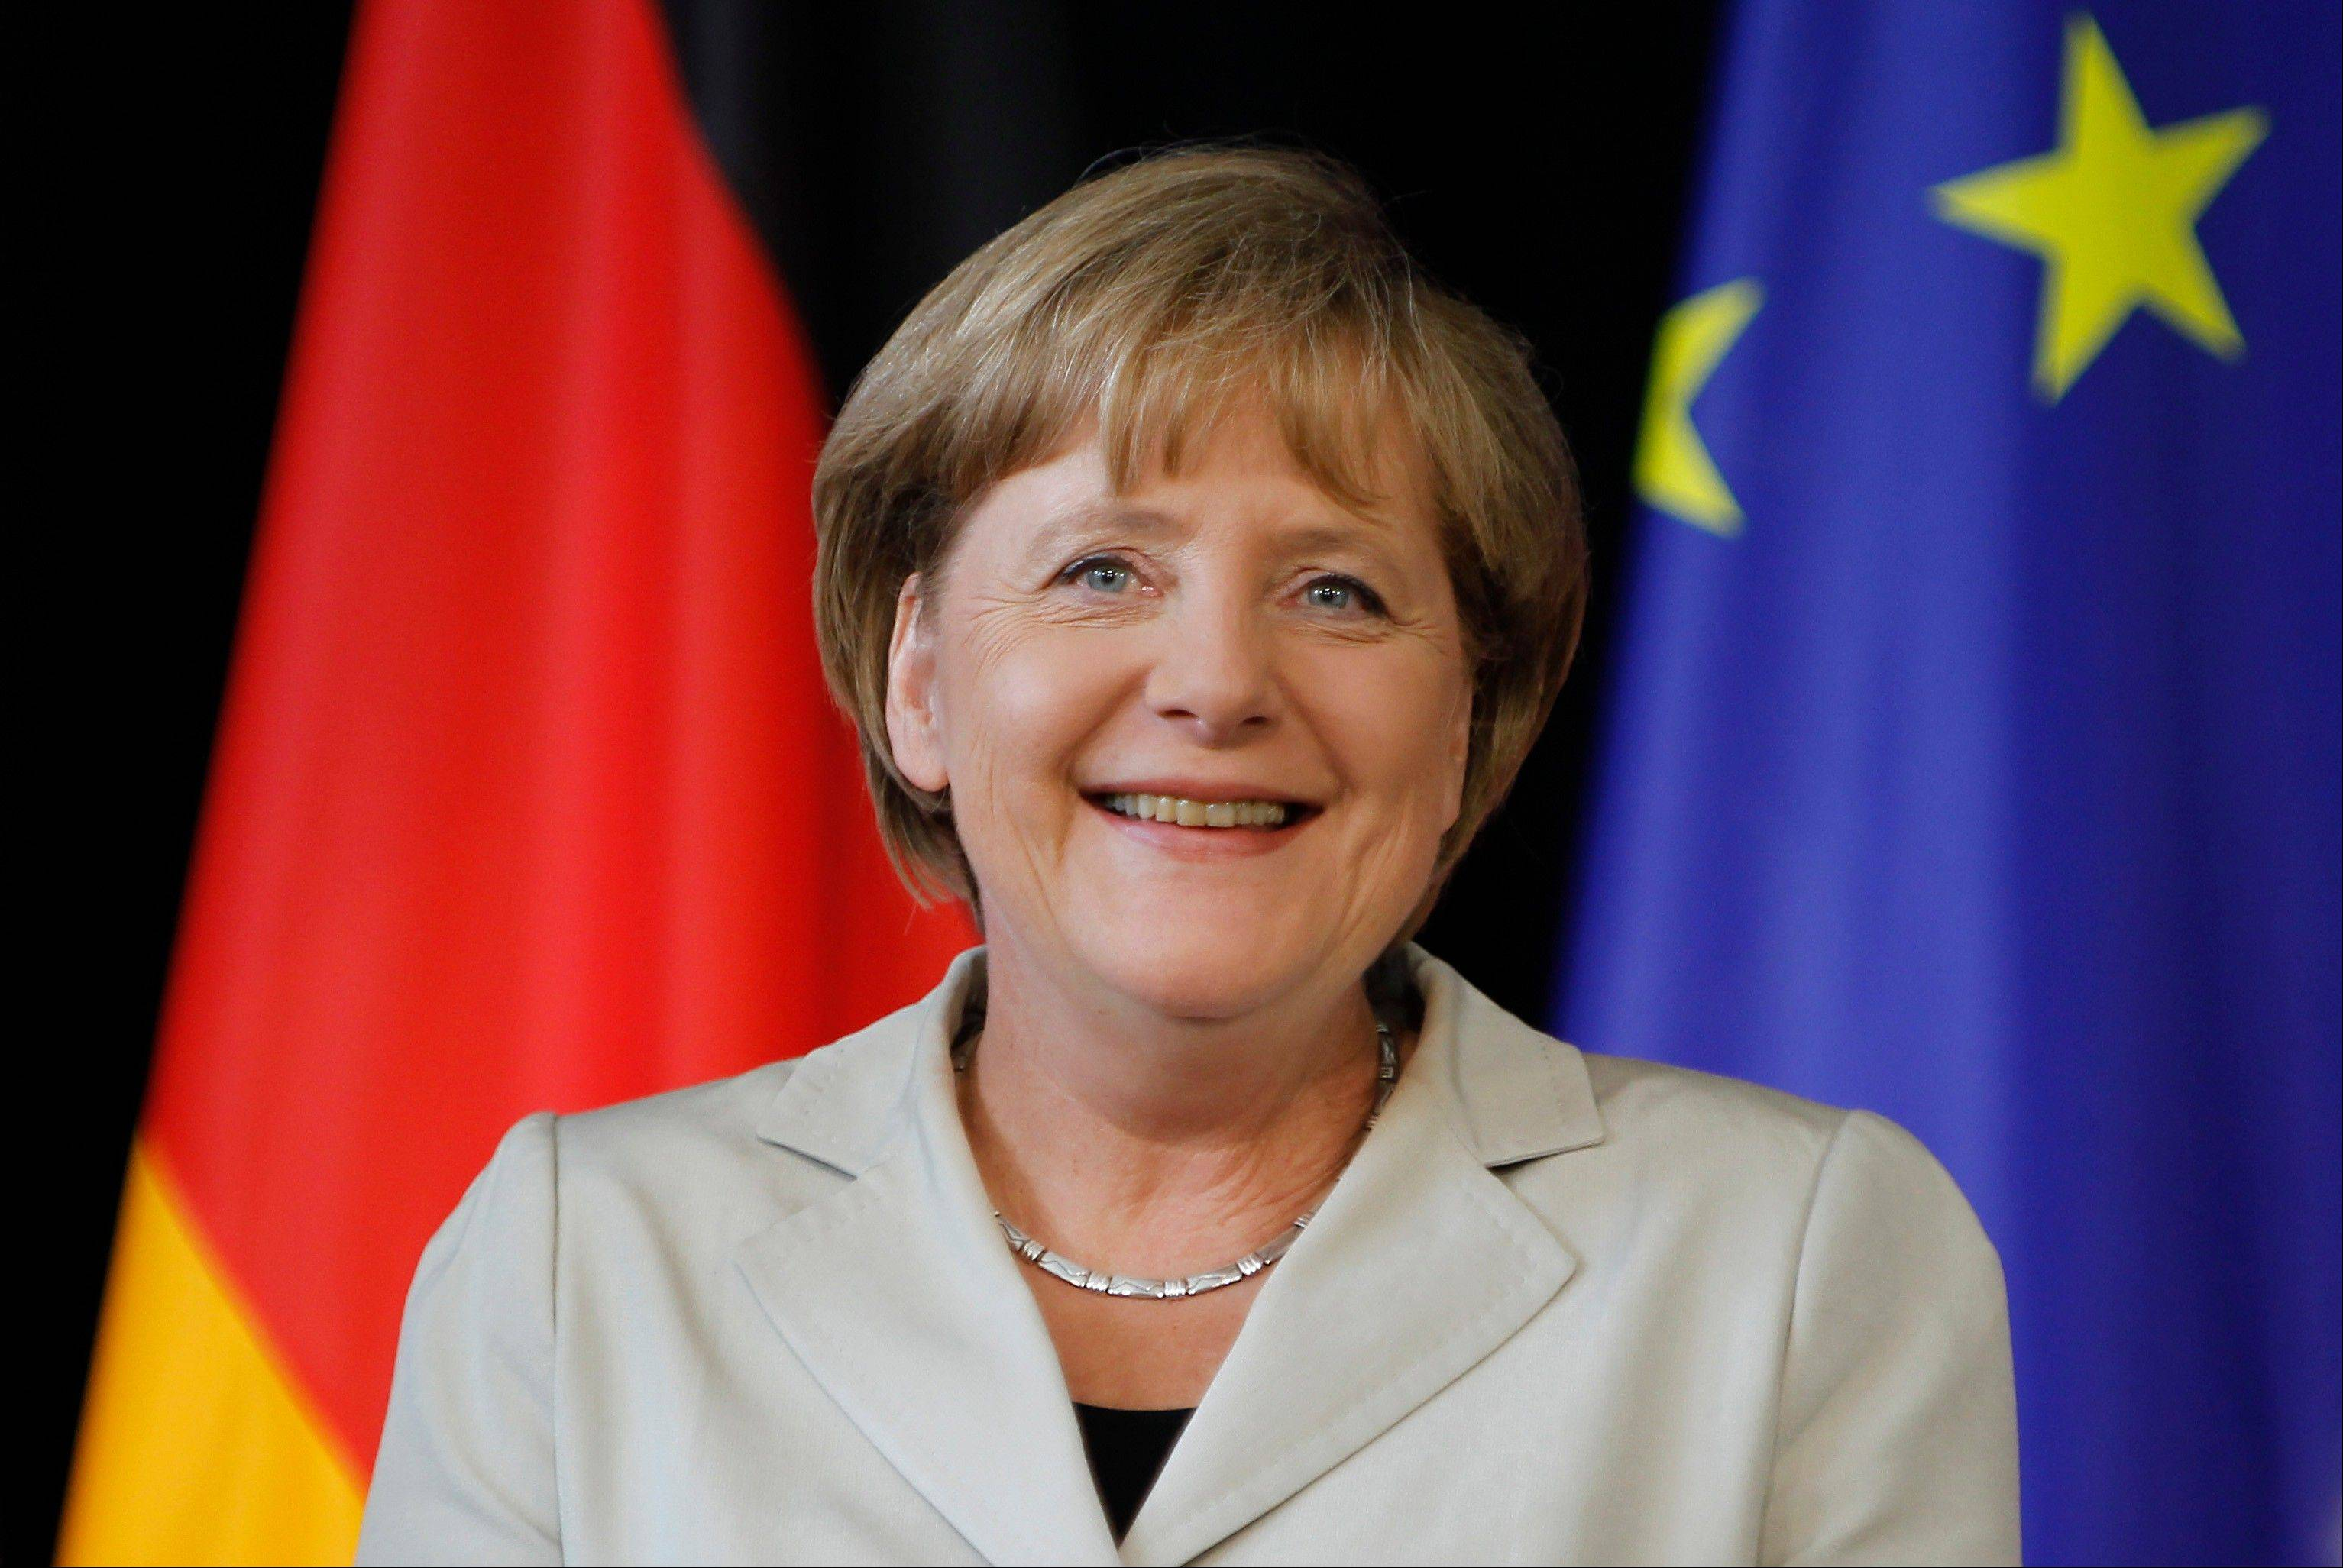 German Chancellor Angela Merkel warned Tuesday that there are no easy answers to the Greek debt crisis that threatens Euro zone financial stability.